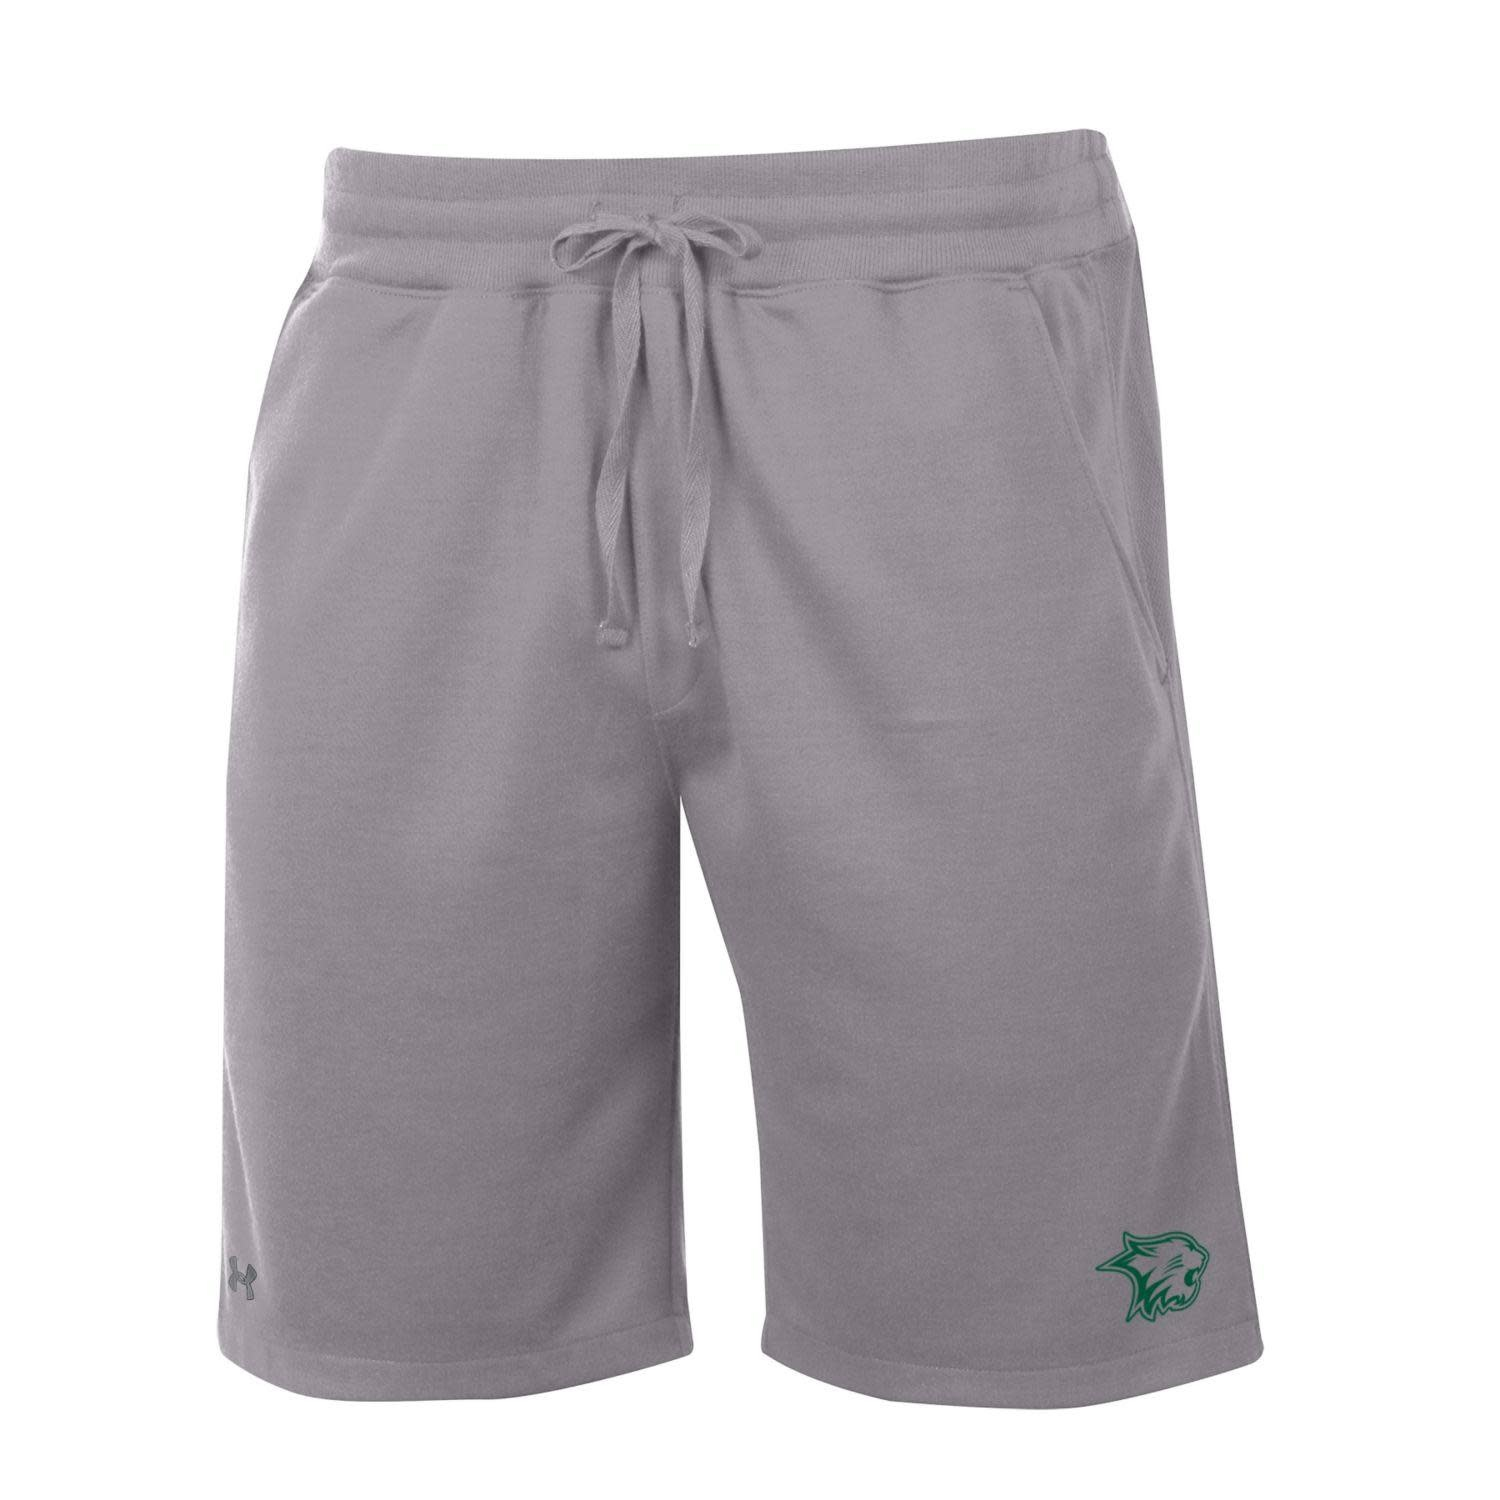 Under Armour Shorts: Men's Fleece w/pockets - Gray